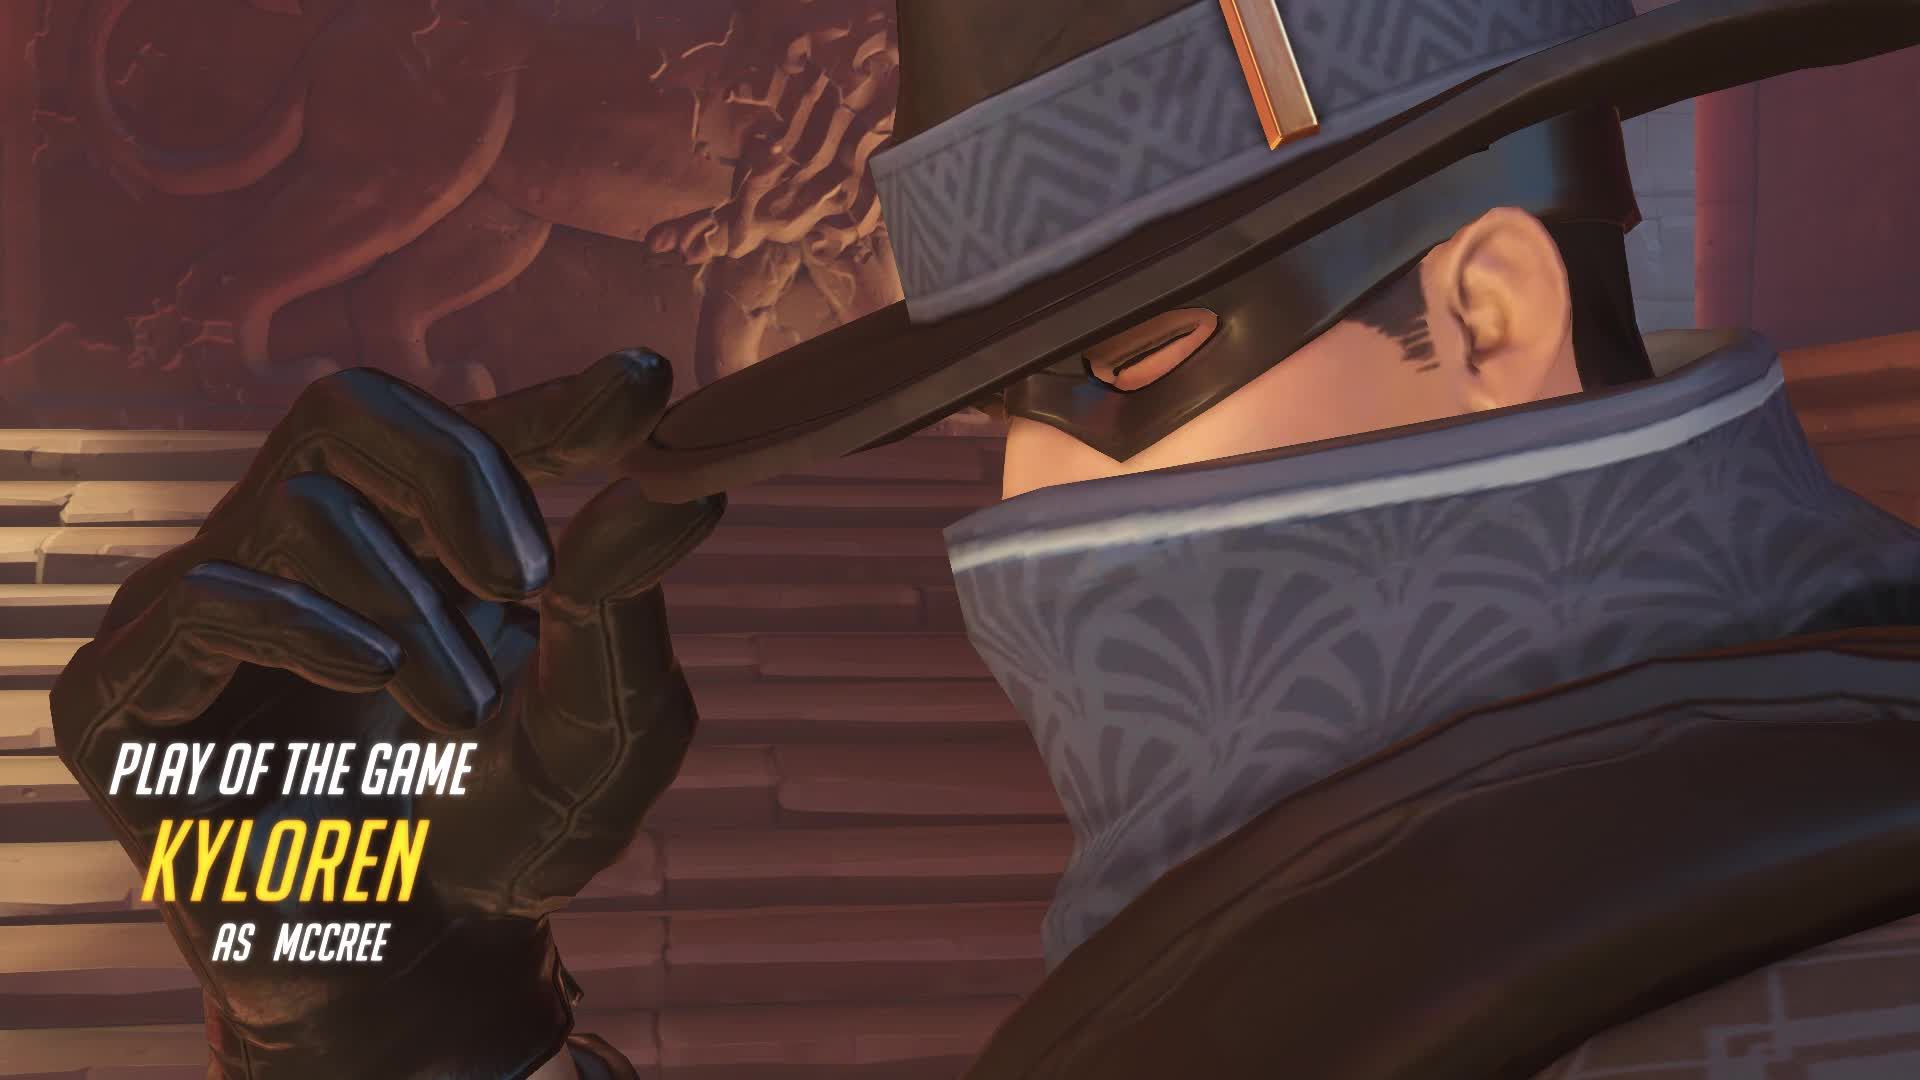 a, deathmatch, dm, female, game, highlight, kylo, kyloren, lemons, limes, mccree, of, overwatch, play, potg, ren, single, the, white, whitefemale, McCree Petra GIFs